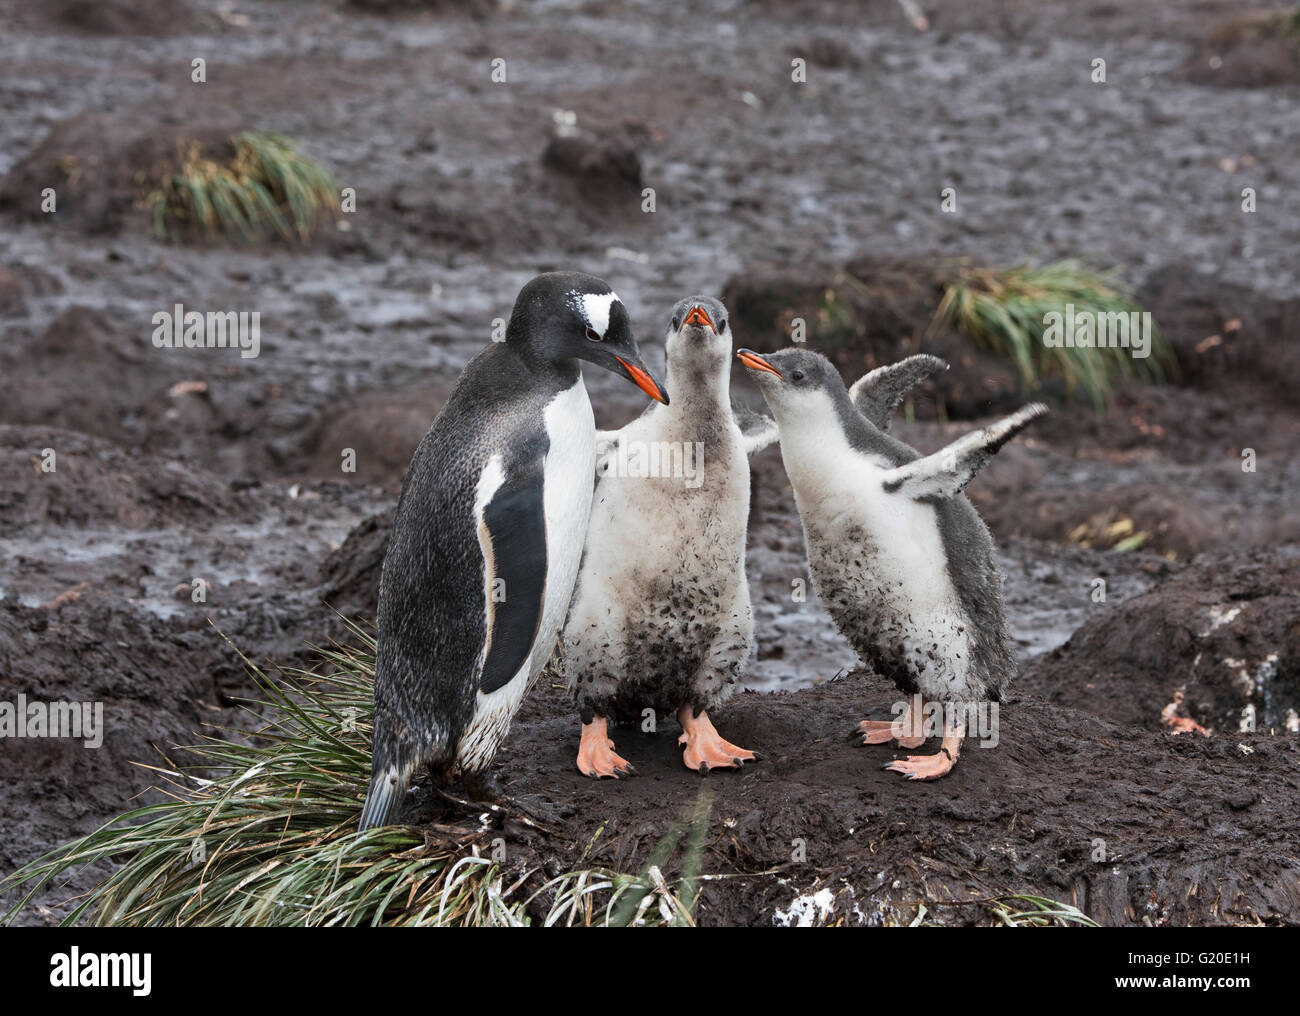 Gentoo Penguin Pygoscelis papua with chick, Holmestrand, South Georgia, January - Stock Image